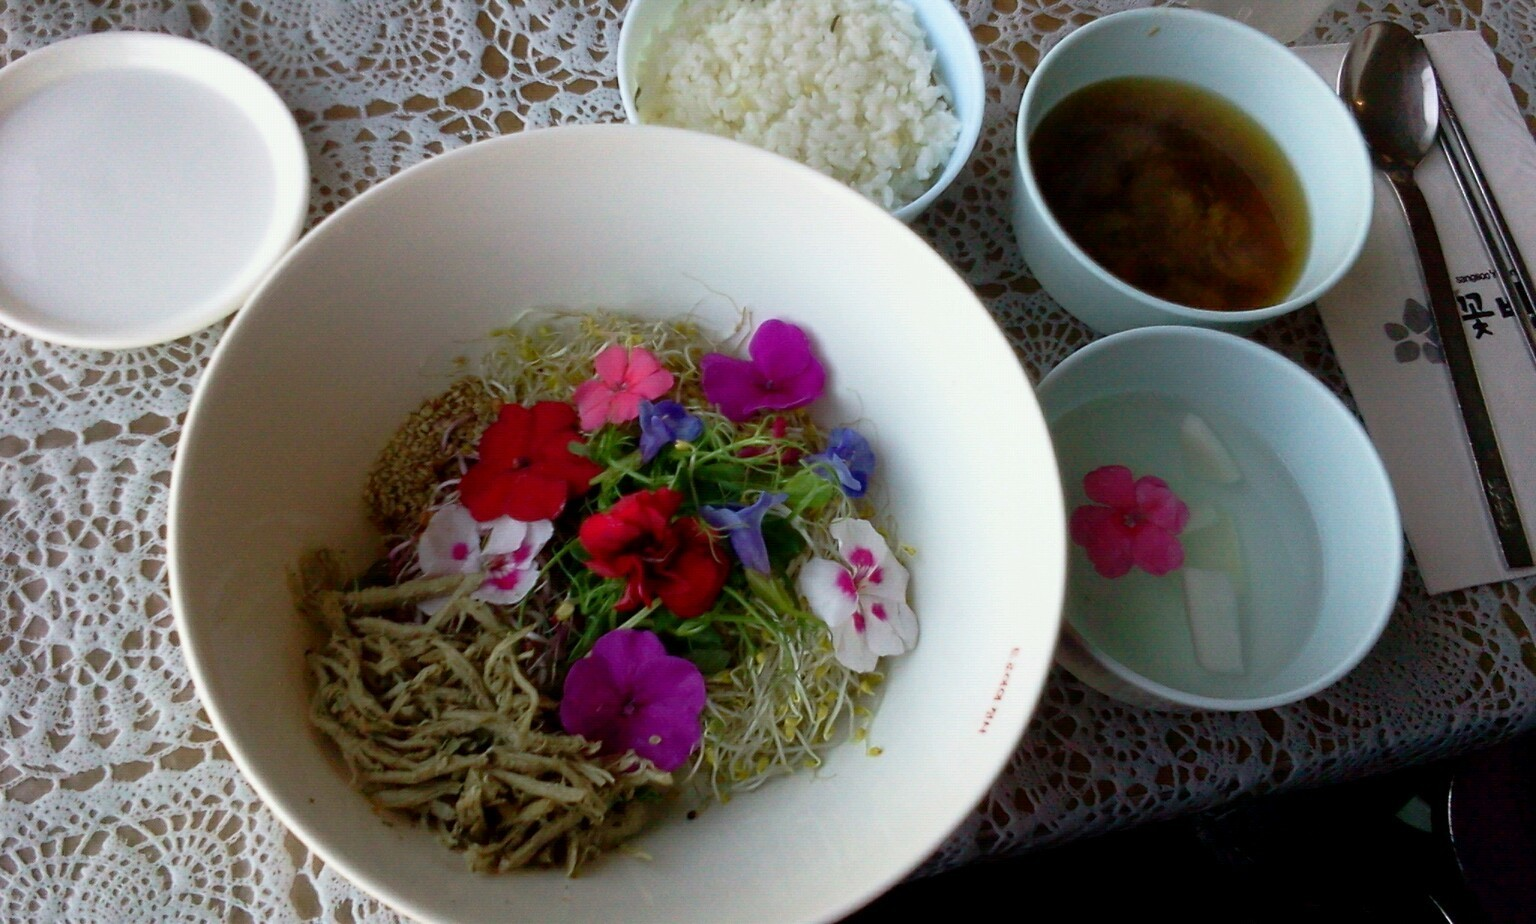 Cot bab ( flower rice ) this is my first time eating cot bab, here in South korea..taste is really good for me, this kind of food is so amazing and really good for our health; the fowers is from the herbs plants..��